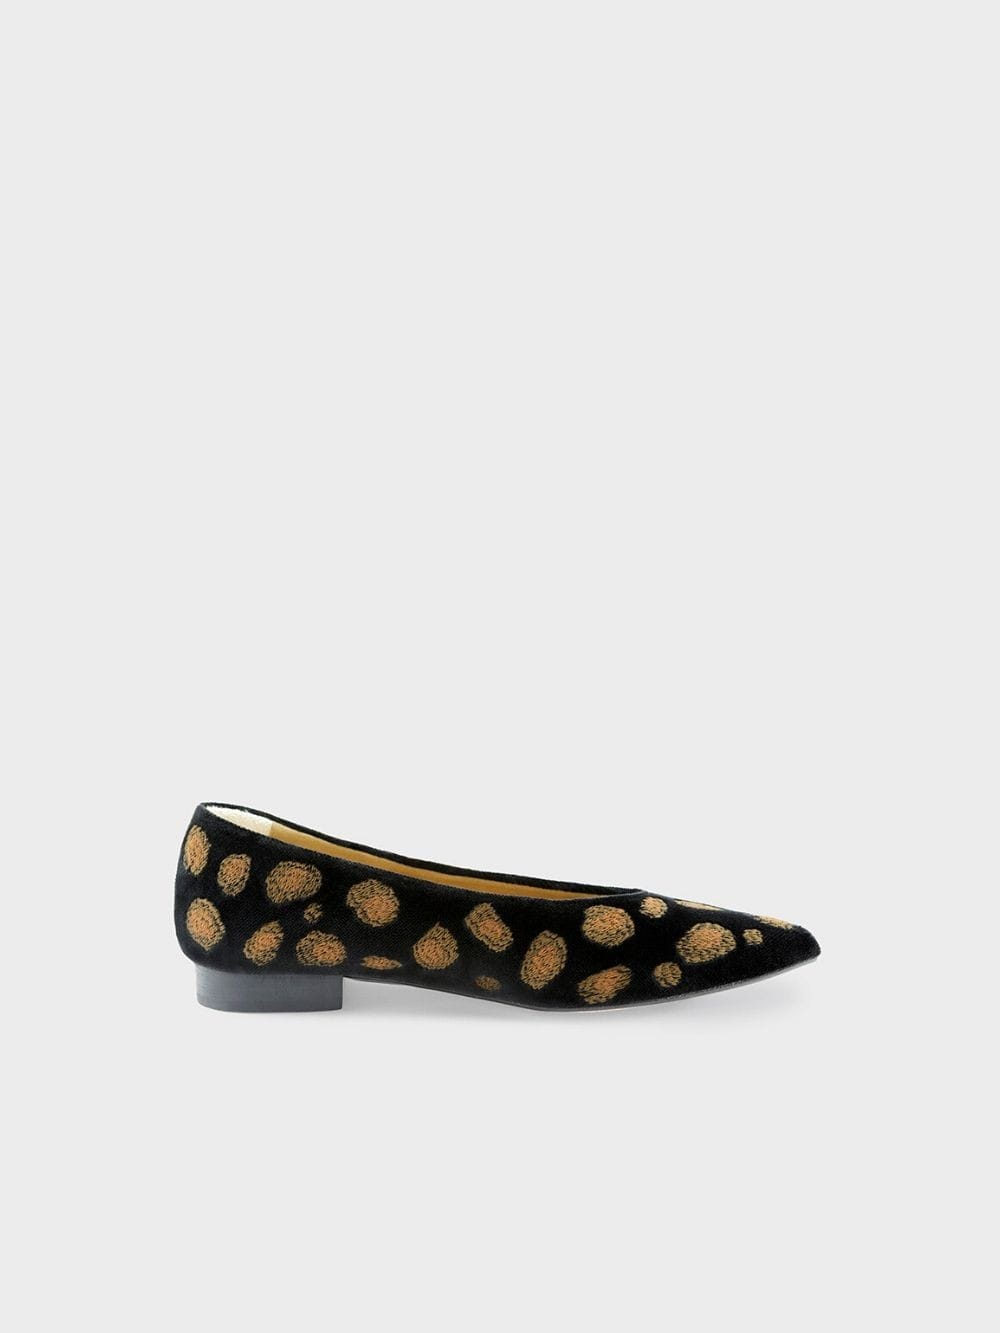 Vegan and sustainable shoes-Leopard